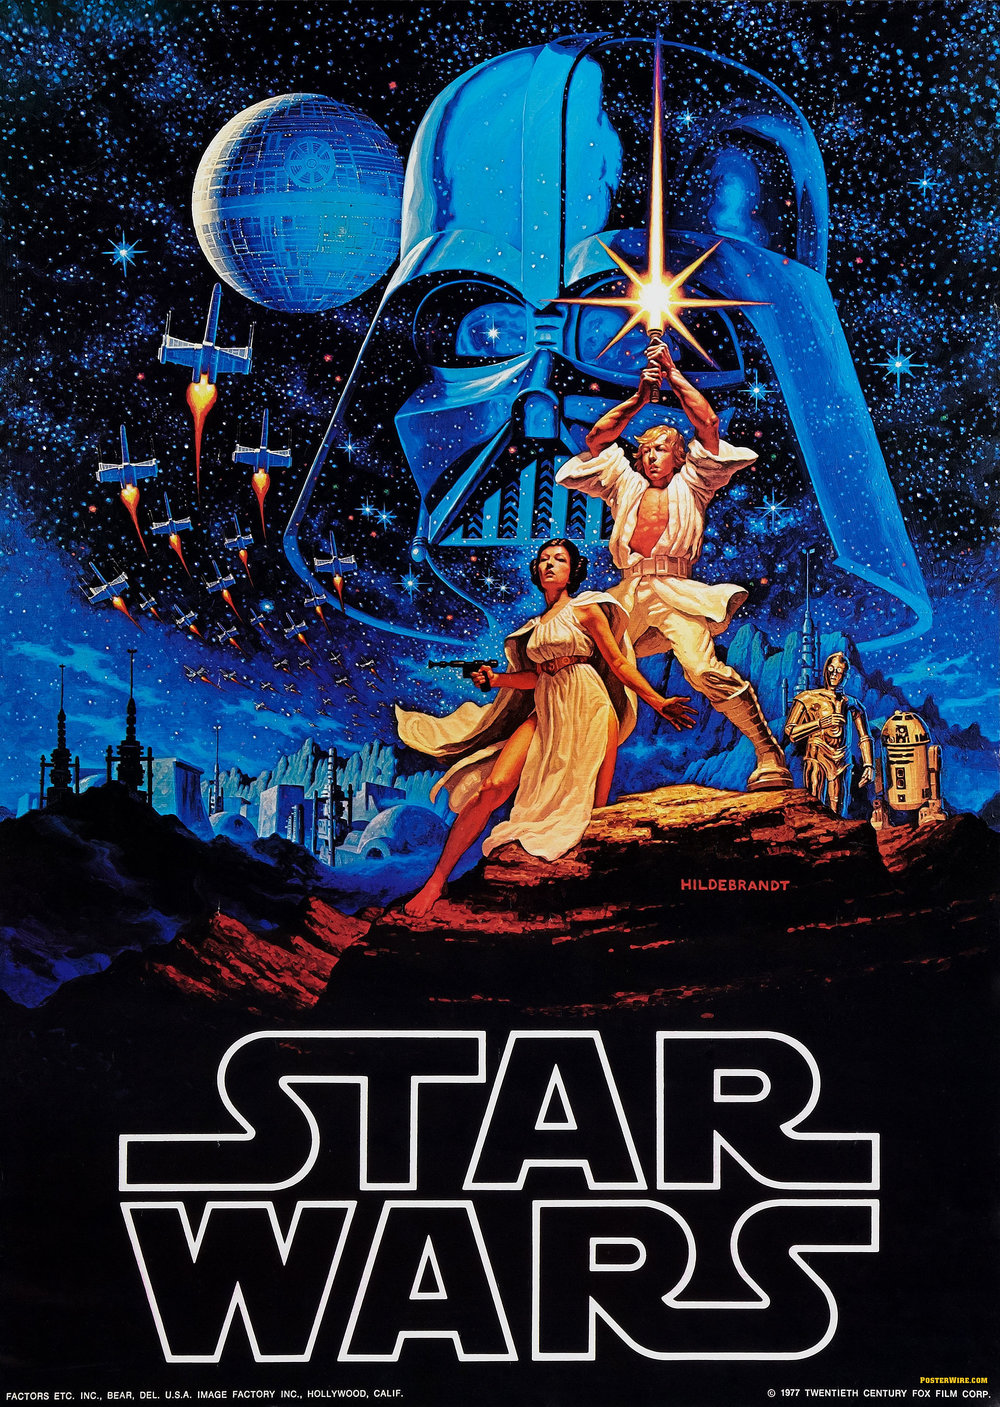 star_wars_hildebrandt_art.jpg